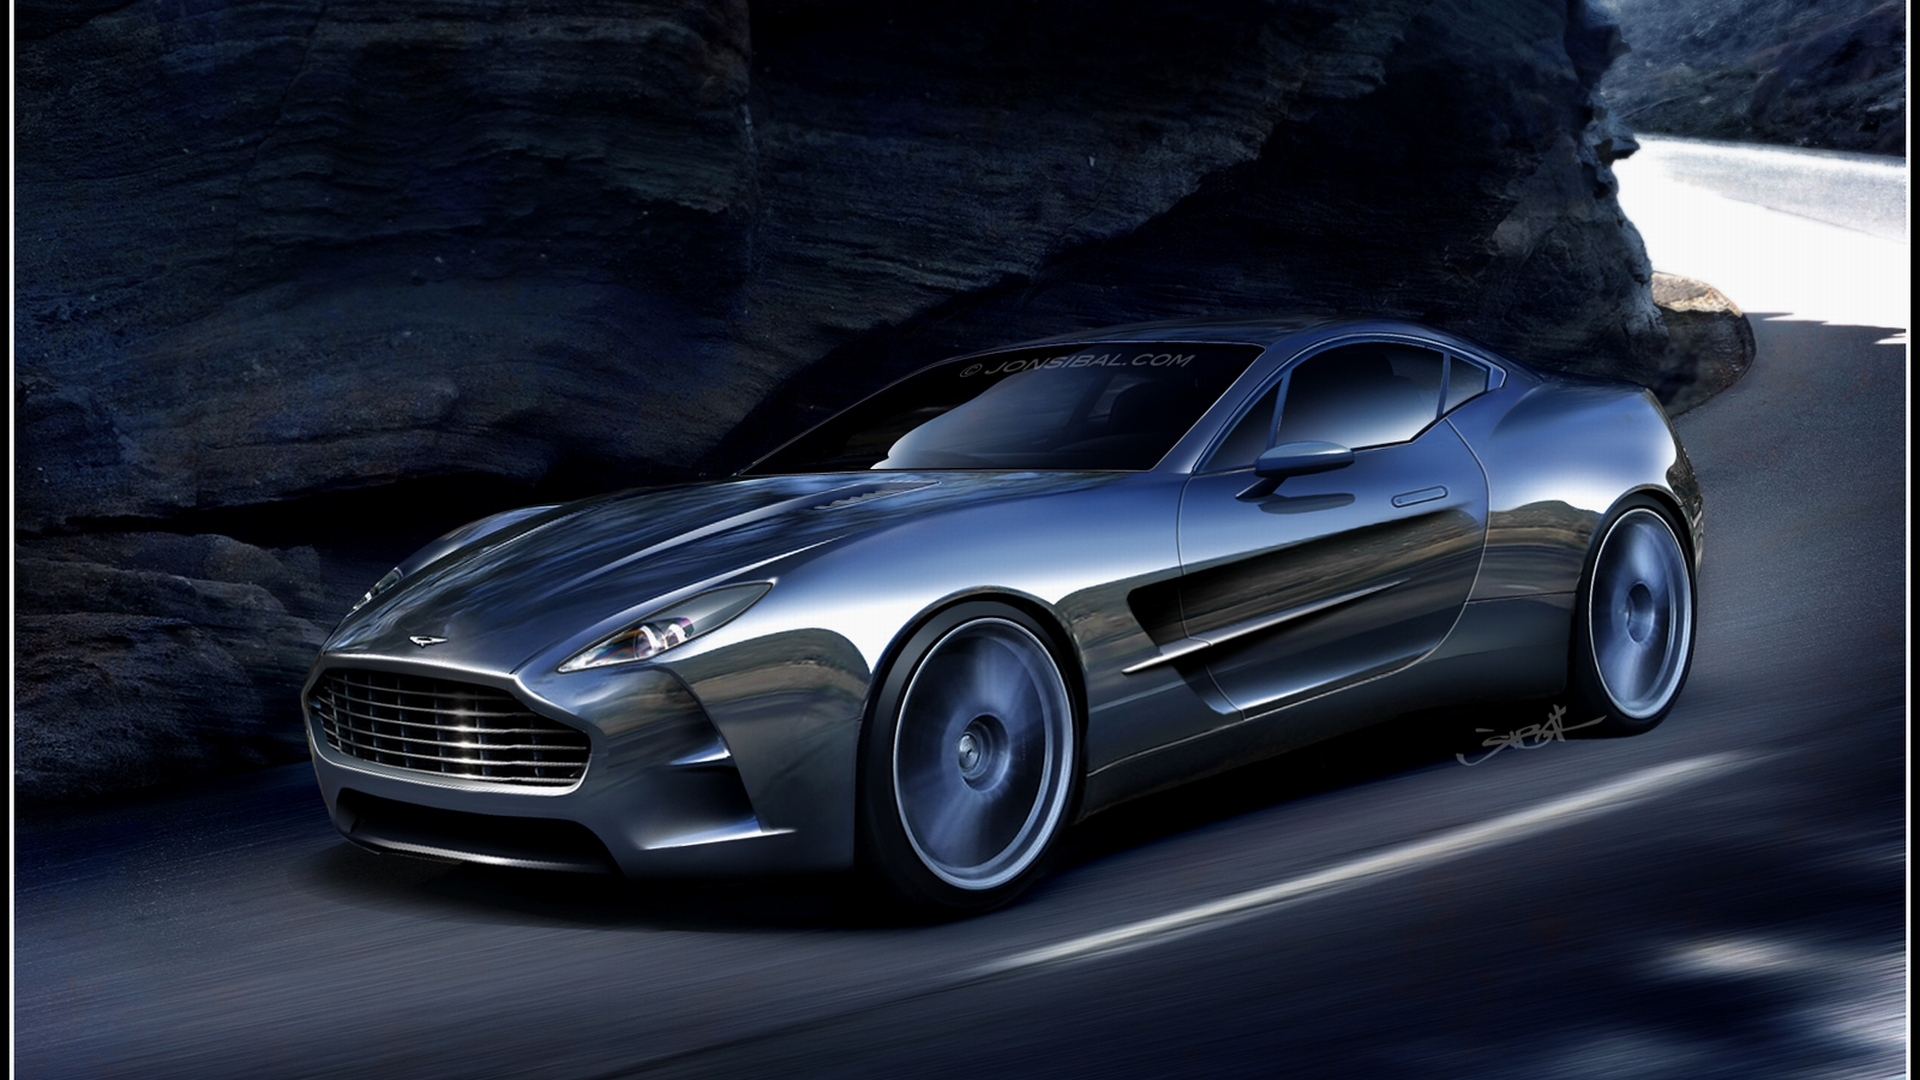 aston martin one-77 full hd wallpaper and background image